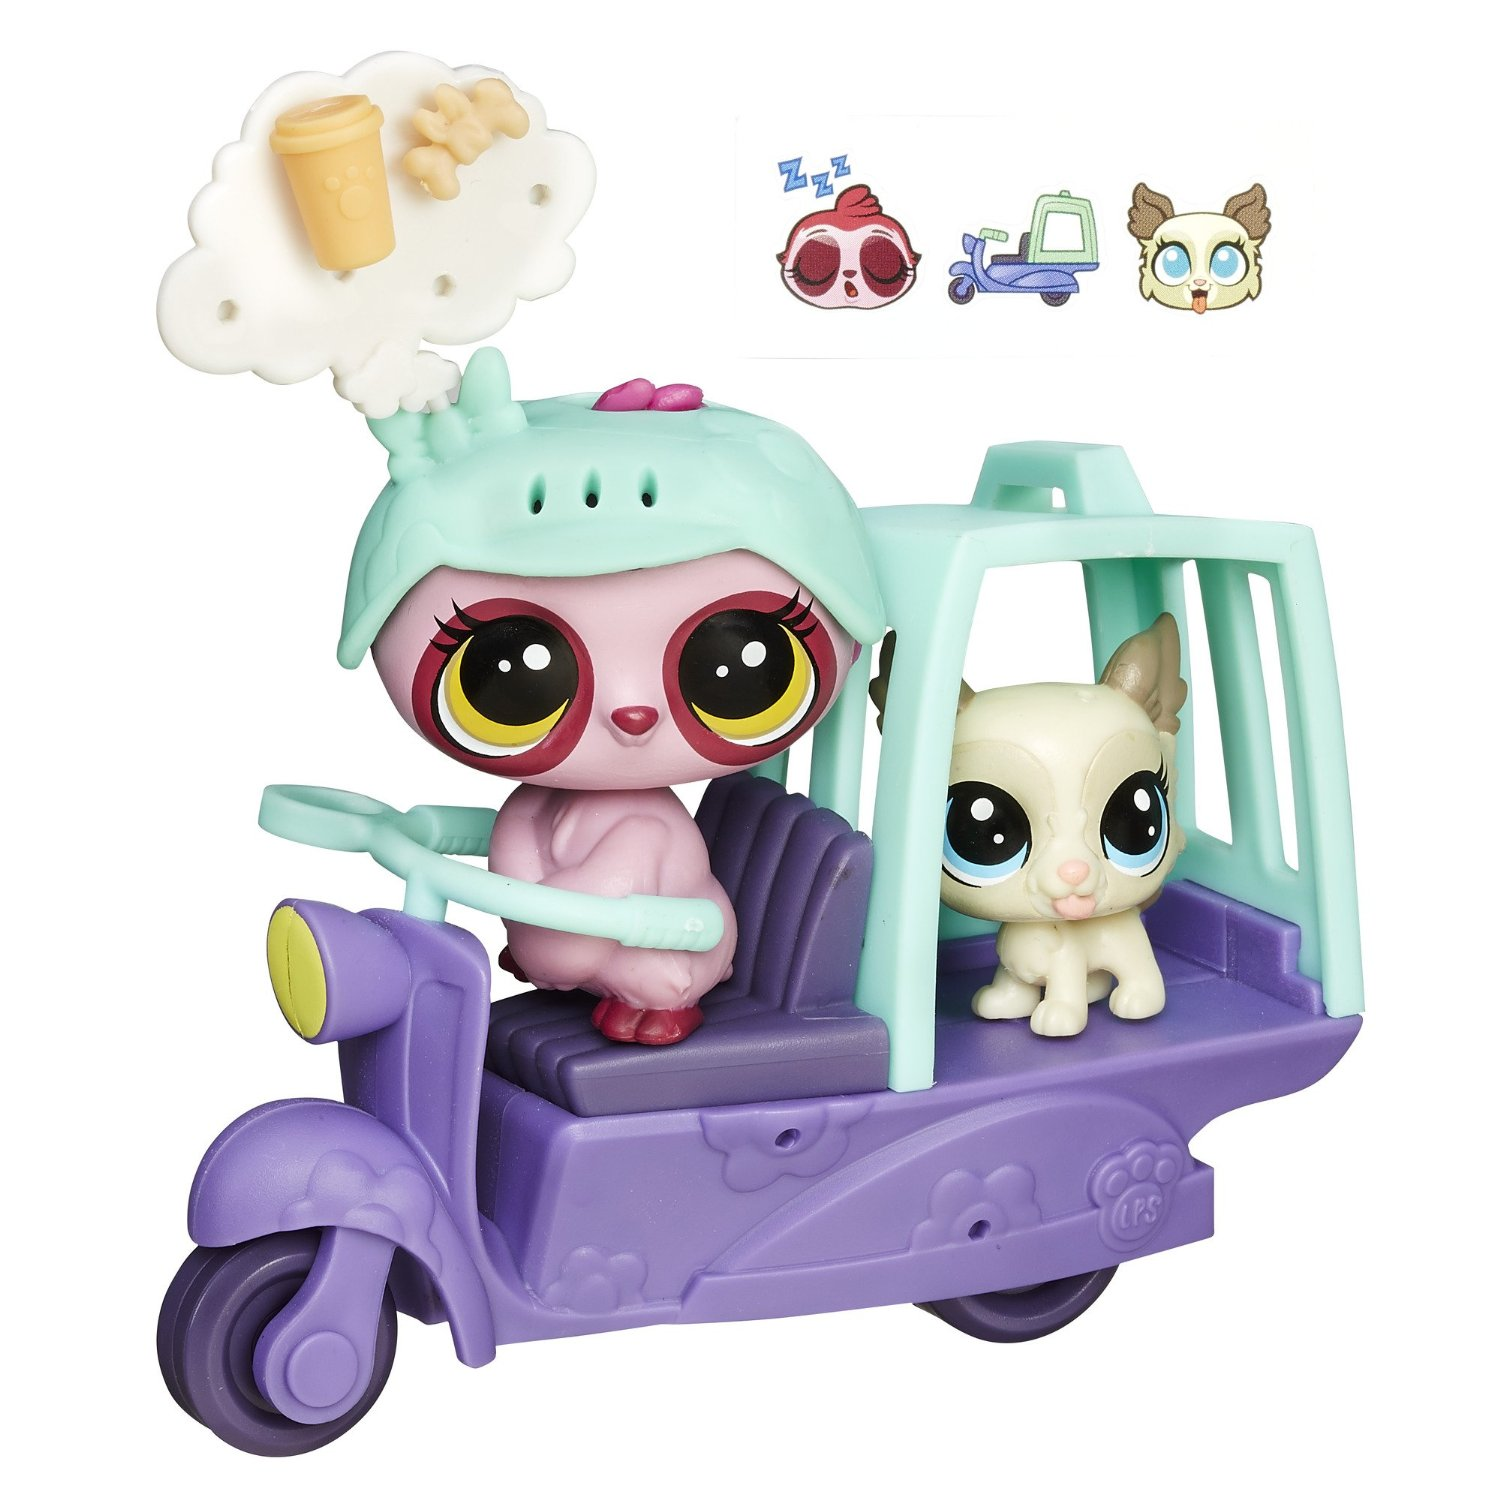 Online shopping for Littlest Pet Shop from a great selection at Toys & Games Store. Online shopping for Littlest Pet Shop from a great selection at Toys & Games Store. From The Community. Amazon Try Prime Littlest Pet Shop.